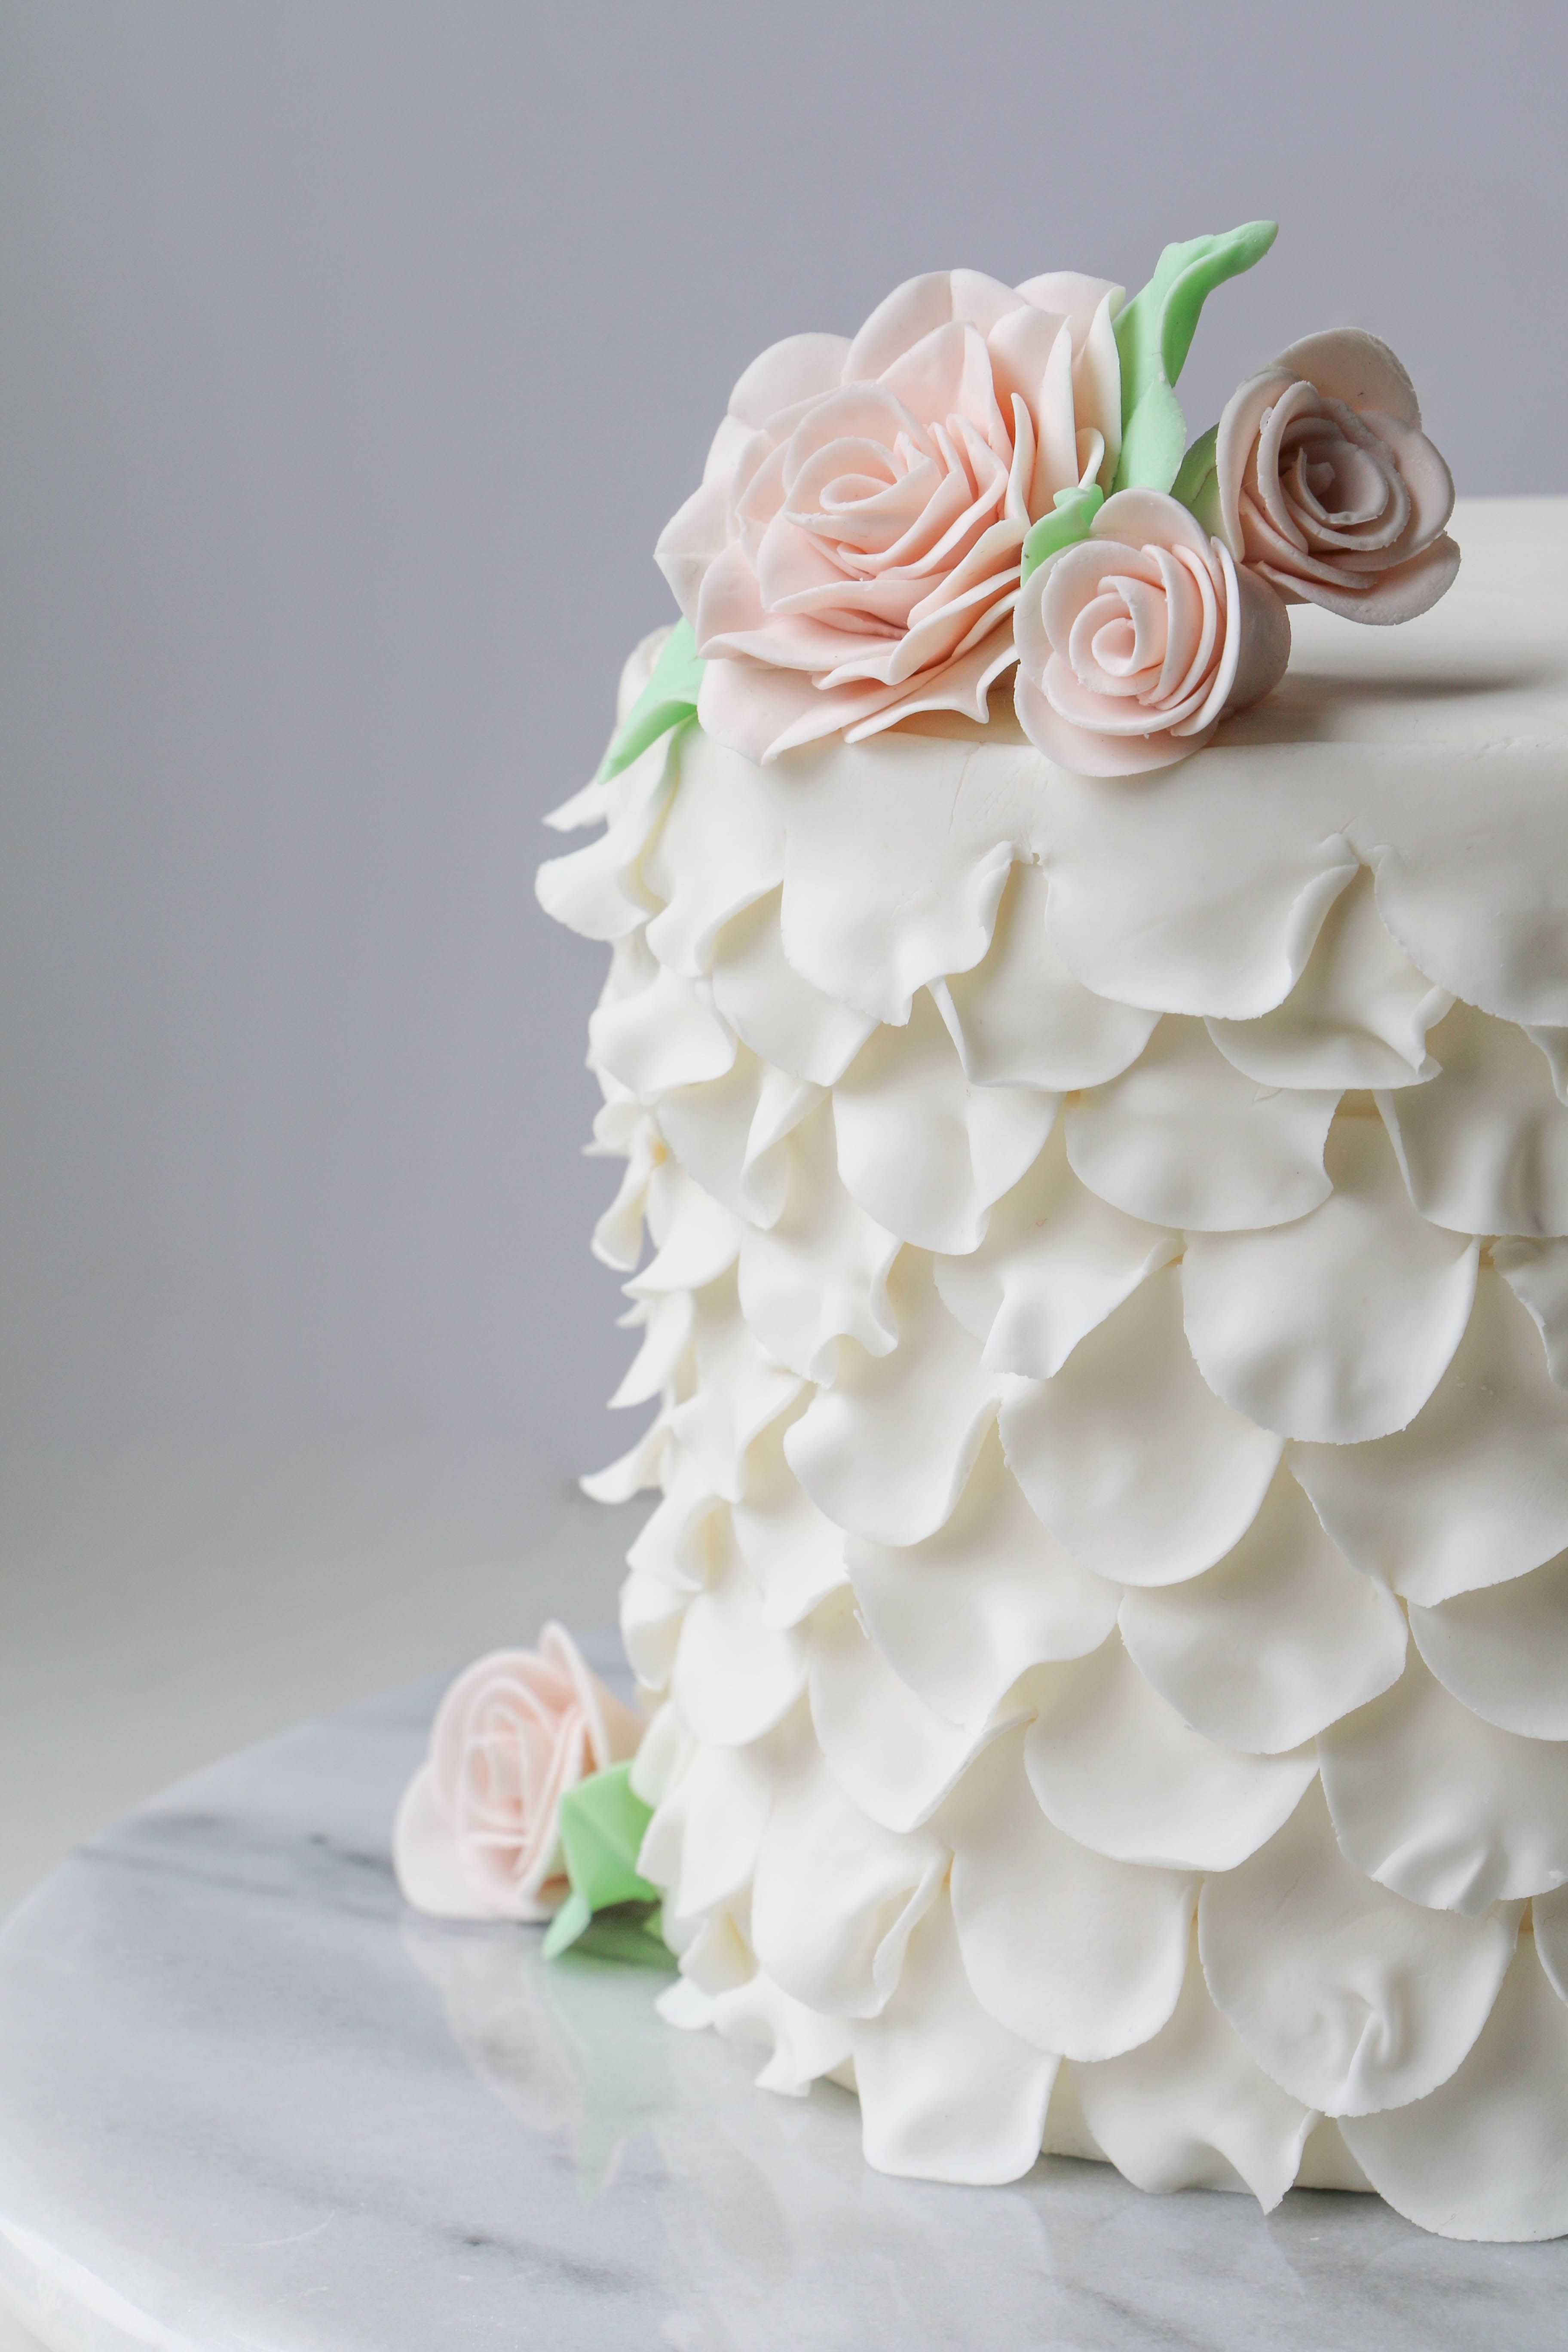 How To Use This 1 Tool To Make Roses Ruffles More Cake Decorating With Fondant Camo Wedding Cakes Fondant Flowers